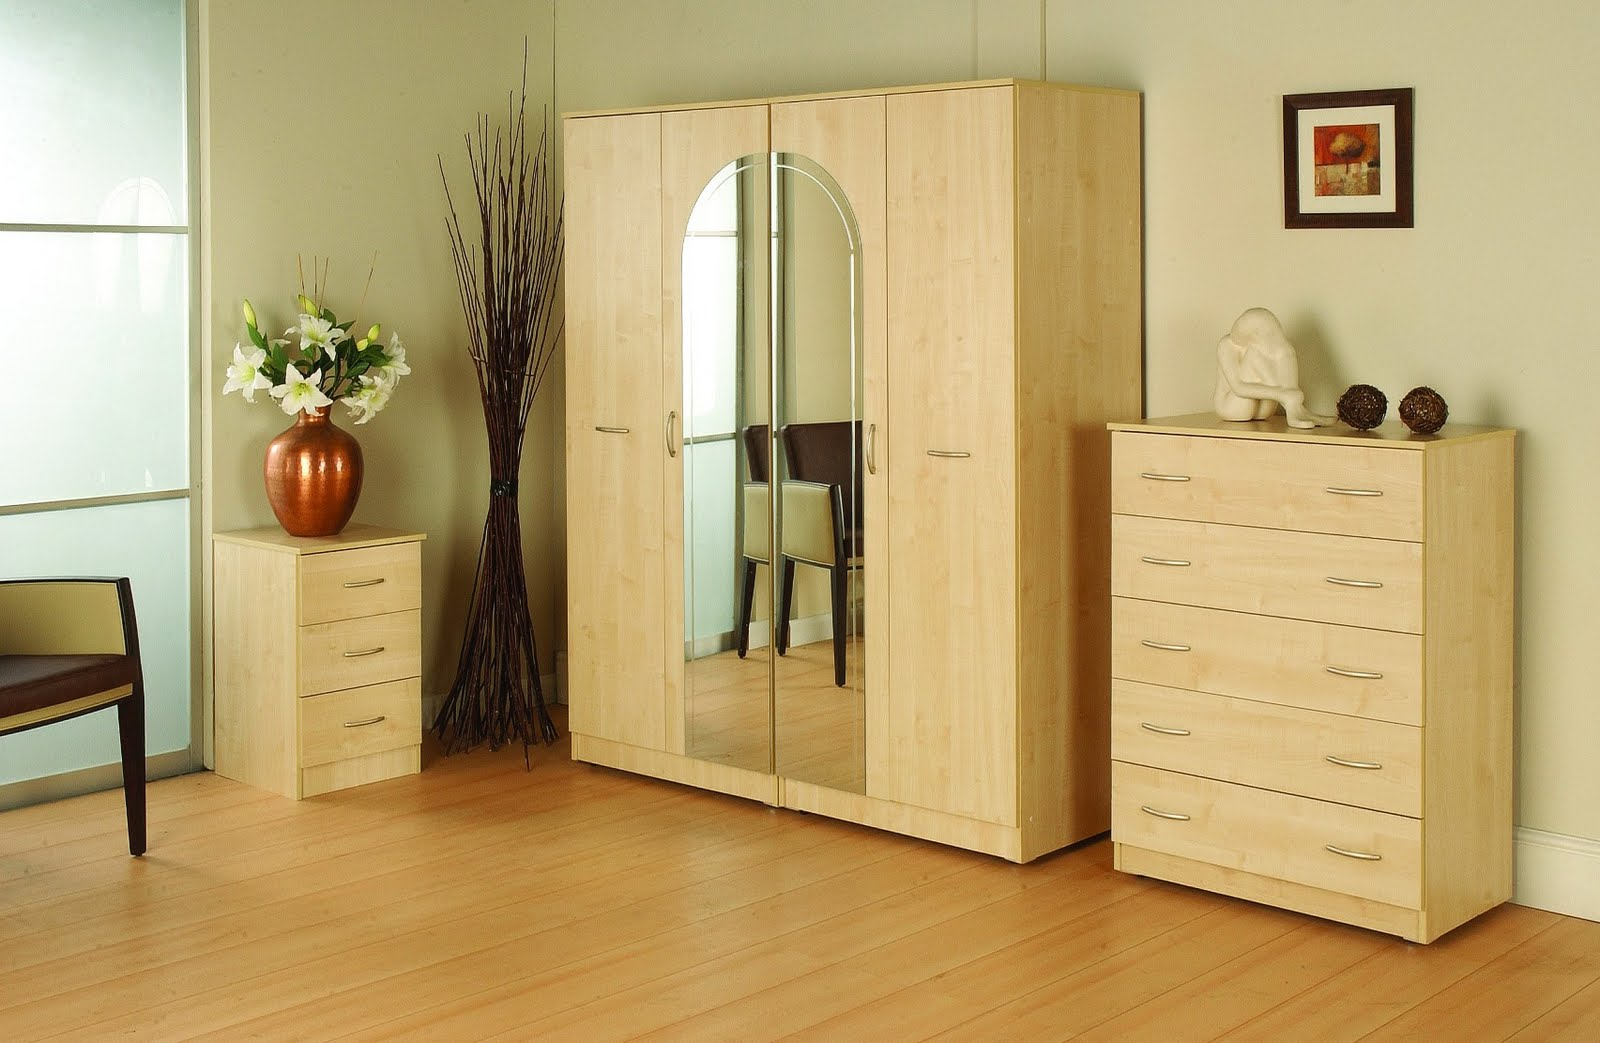 Home furnishing wardrobe designs - Wardrobe design ...